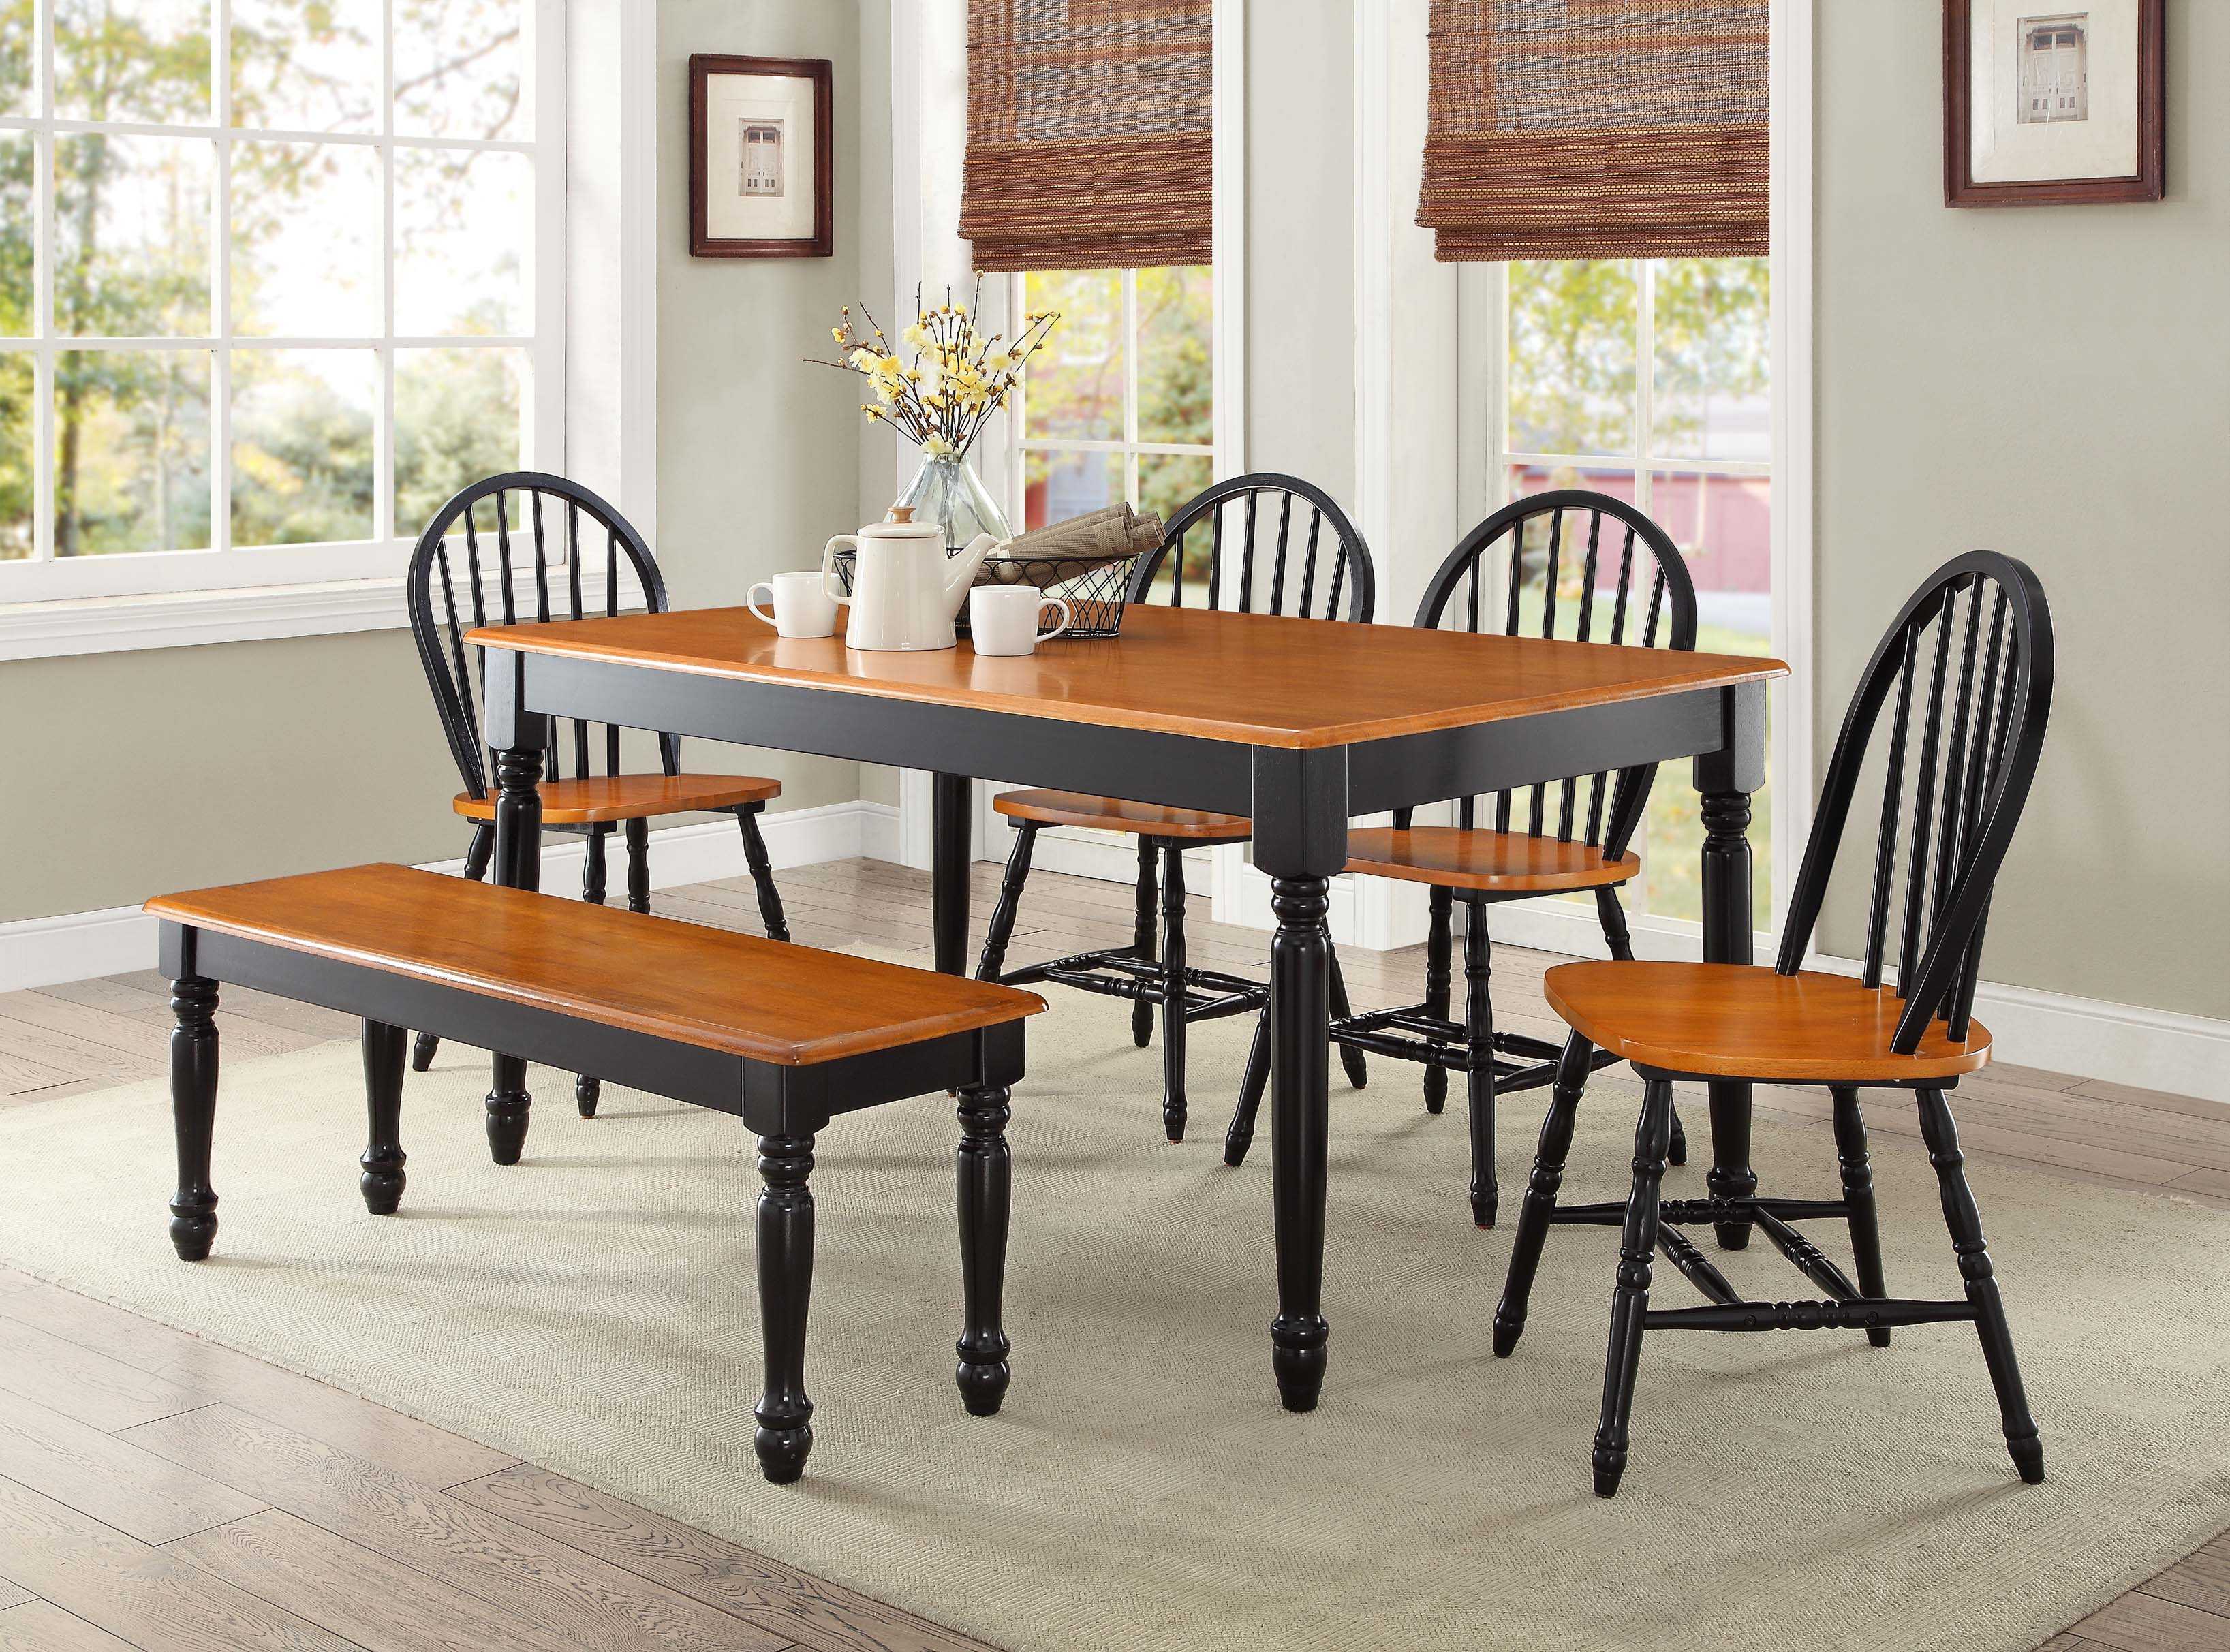 Modular chairs for dining room table kitchen u0026 dining furniture - walmart.com rnqbxsm